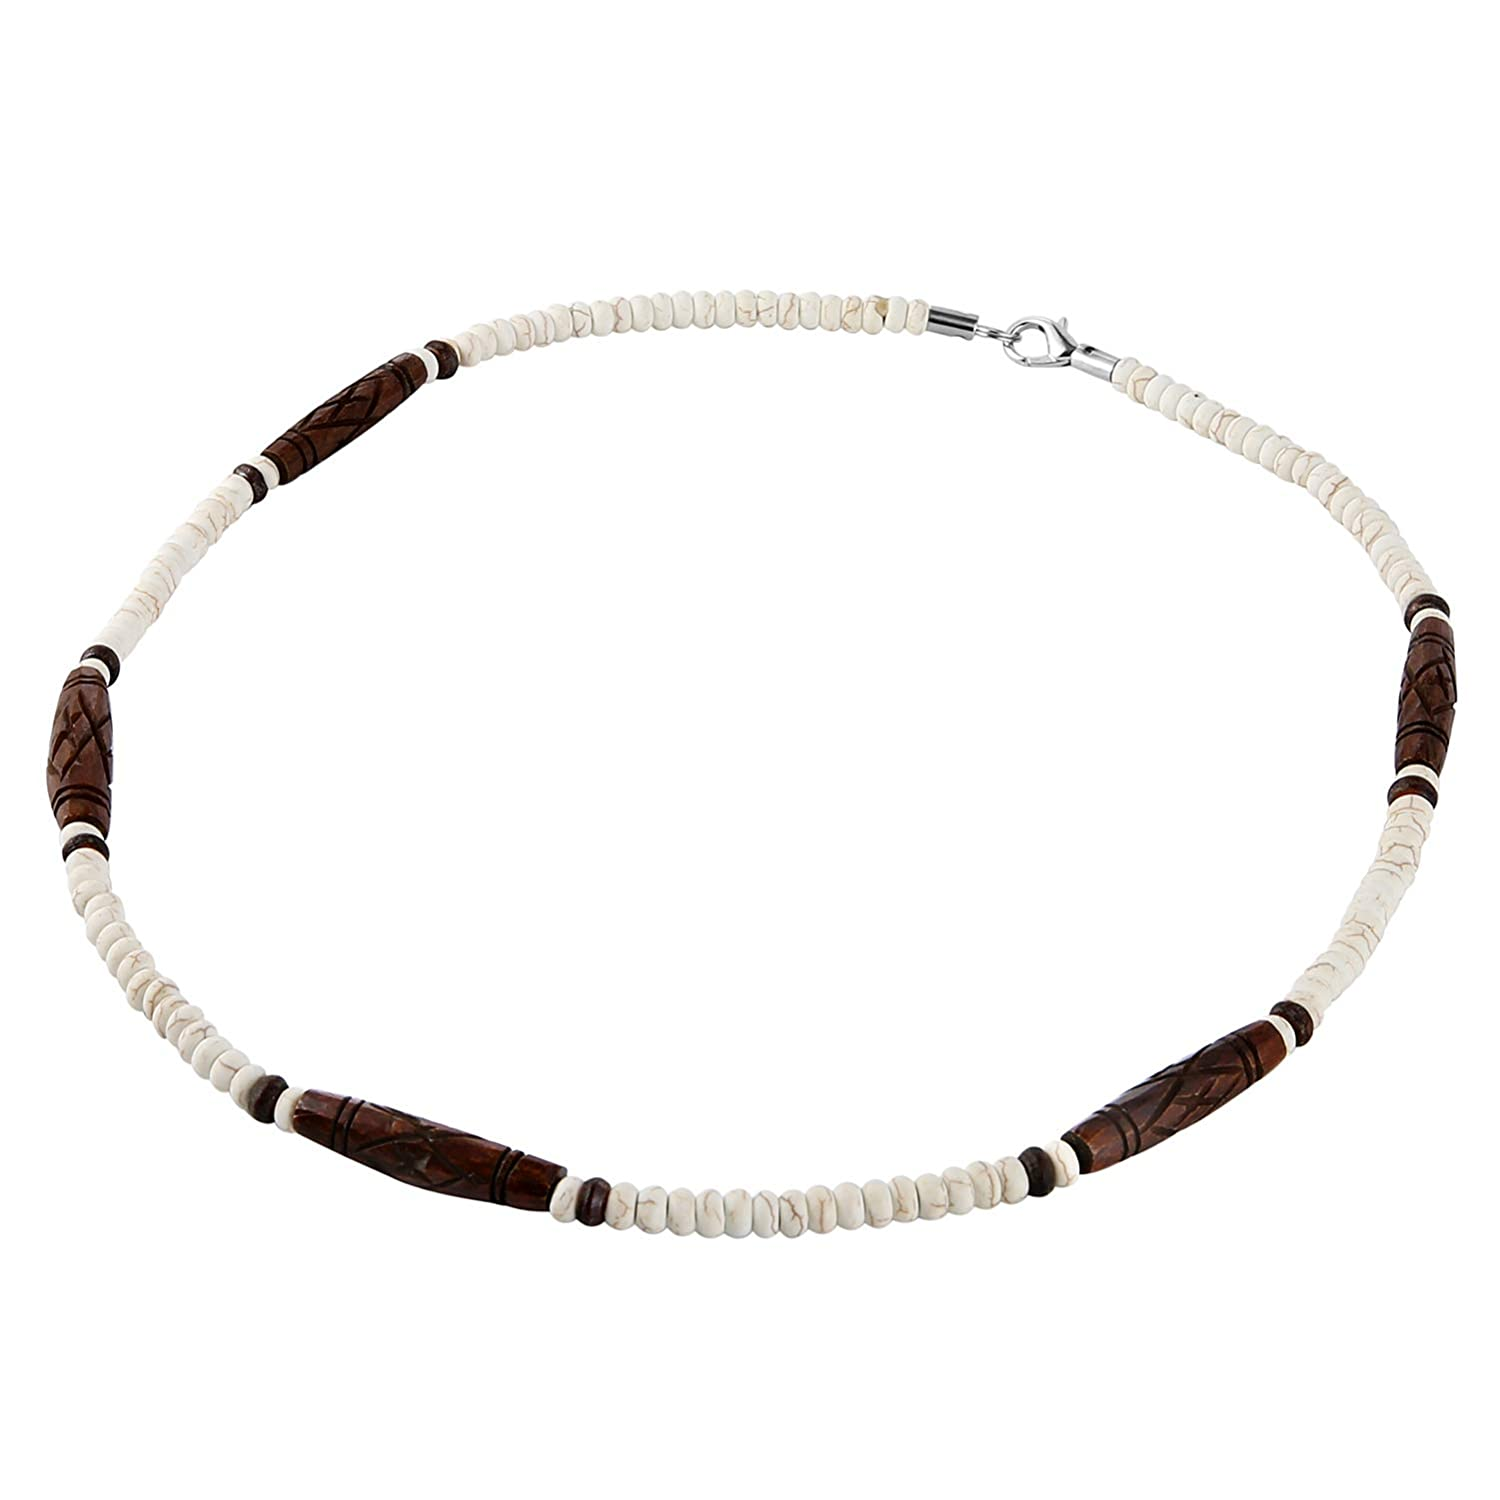 HZMAN Buffalo Bone Native American Inspired Tribal Style Collar Choker Necklace P610309